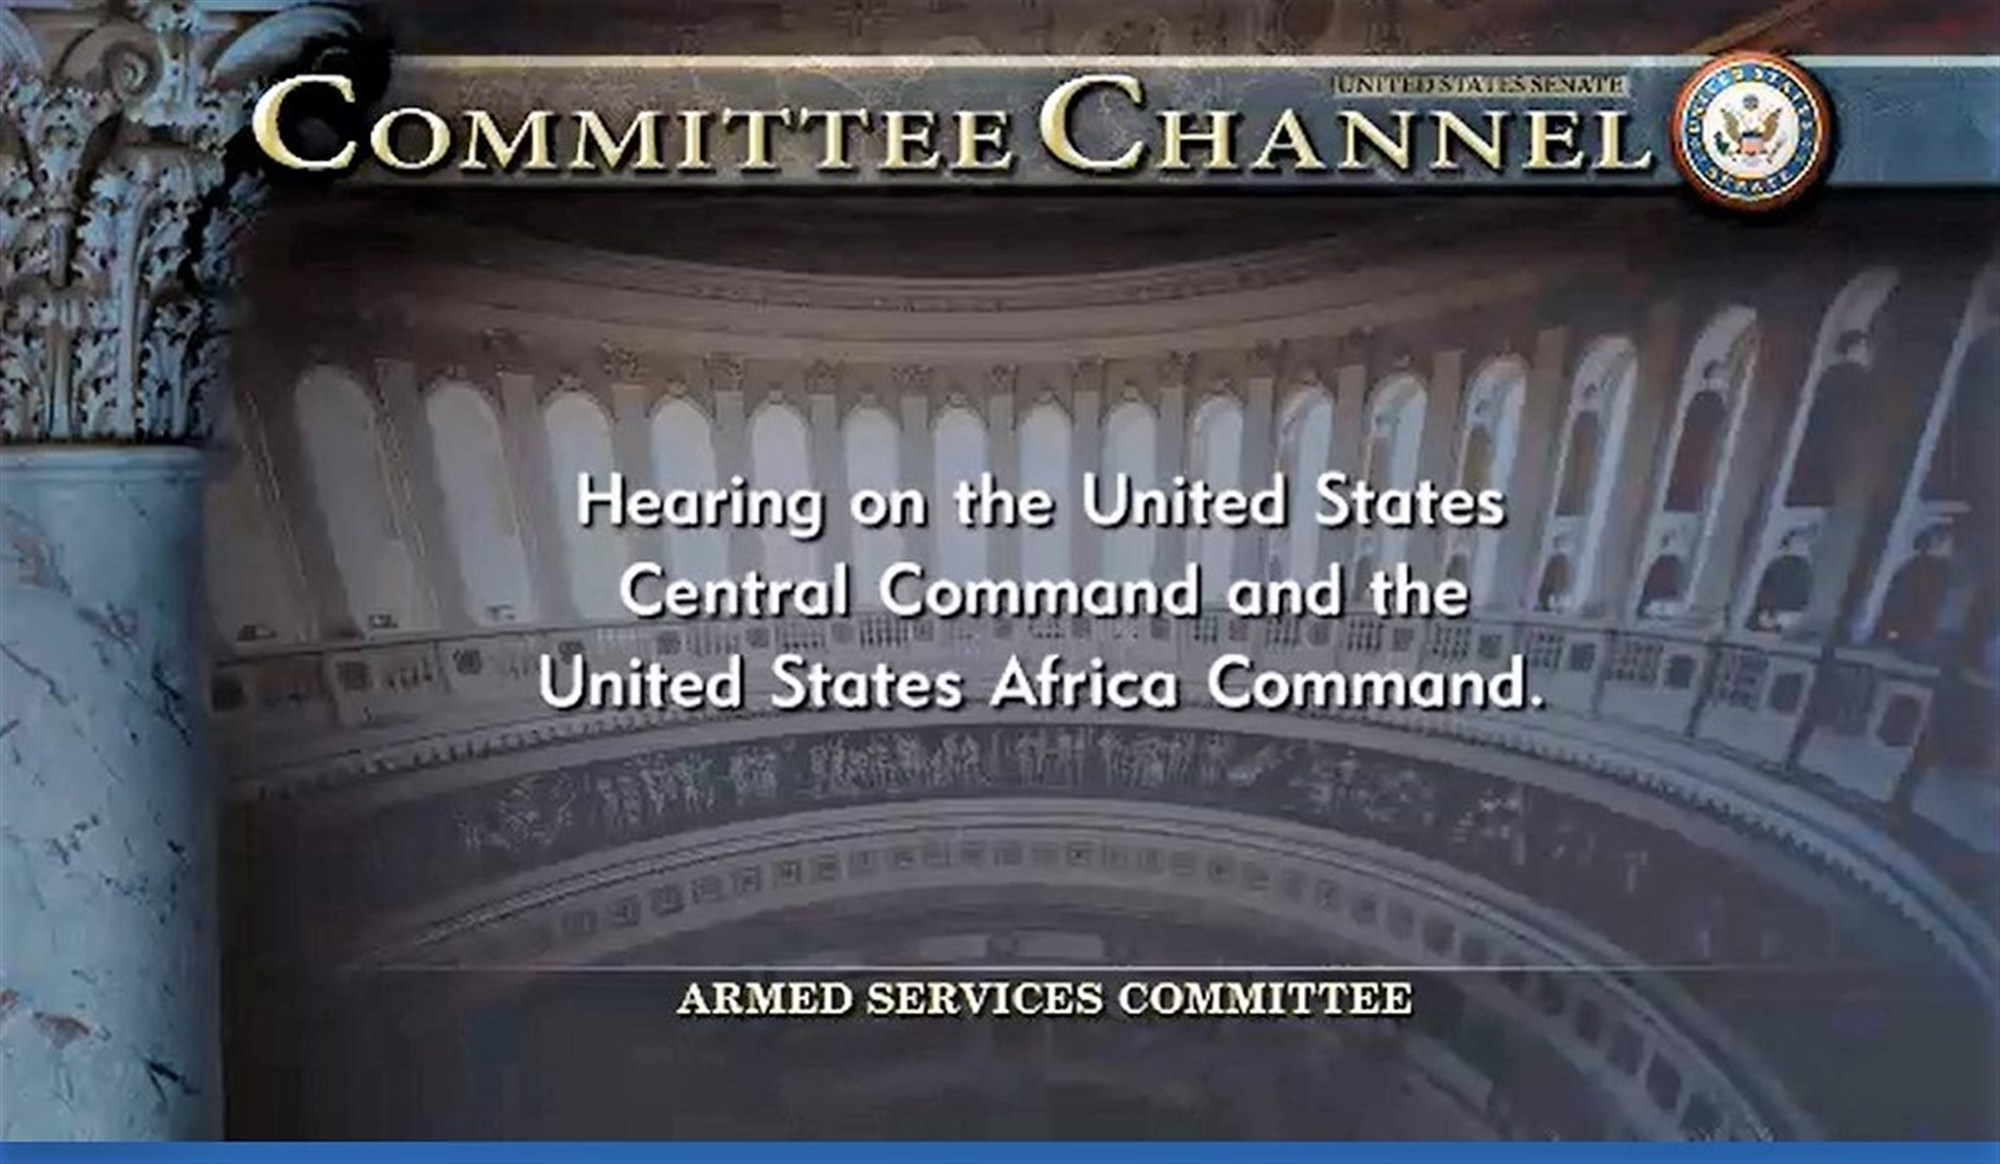 SASC hearing on AFRICOM and CENTCOM, Mar. 9, 2017, Washington.  Gen. Thomas Waldhauser, AFRICOM commander,  appeared before the committee for an annual session that allows members the opportunity receive updates from commanders and ask questions that inform decisions. During the hearing, Waldhauser submitted U.S. AFRICOM's official annual posture statement and answered questions related to the command's area of responsibility on topics ranging from counter-terrorism initiatives to the influence of other countries upon the African continent.  (Courtesy image)